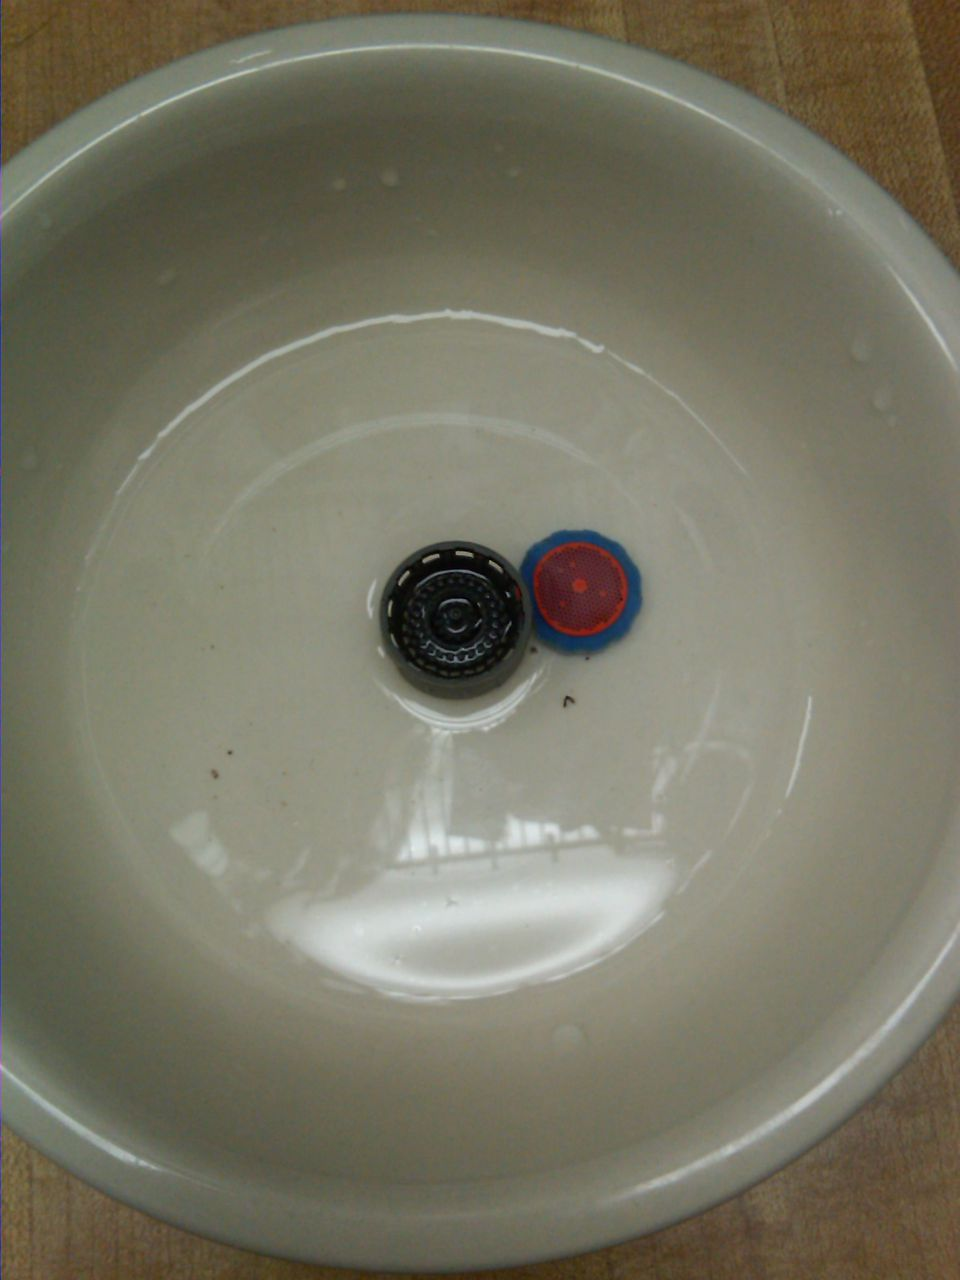 Cleaning A Blocked Faucet Aerator